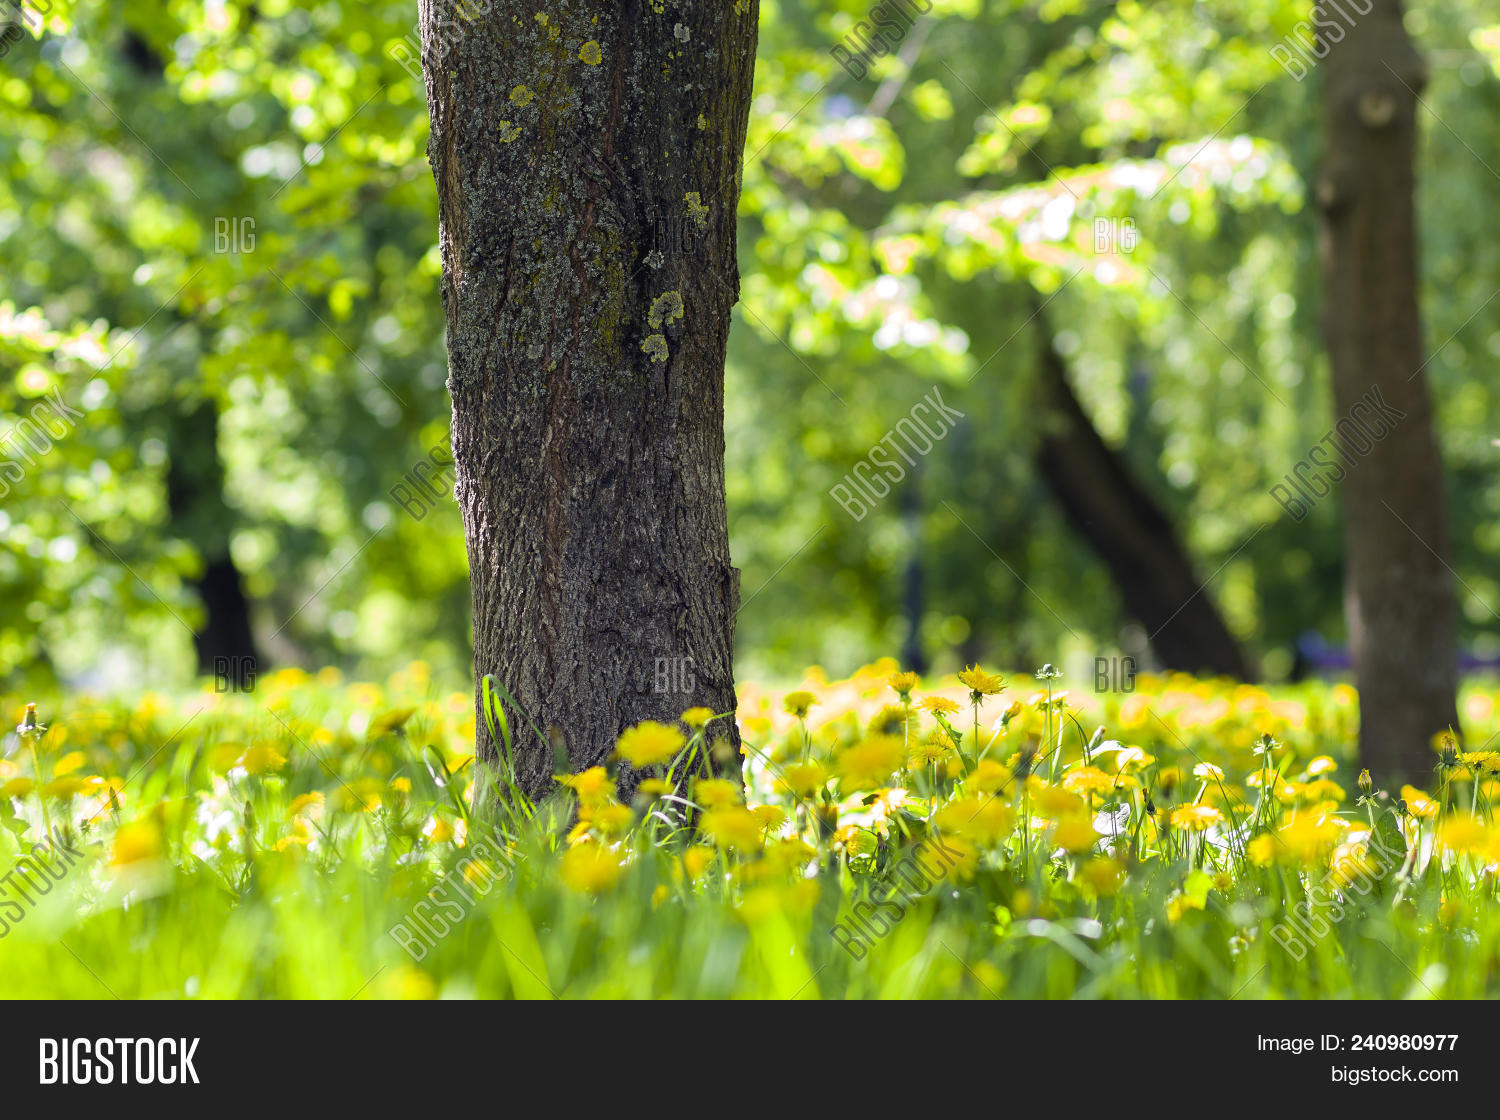 5993942f02c0e Beautiful spring or summer wild forest or park on bright sunny day. Thick  big tree trunk and lavishly blooming yellow flowers on blurred green  foliage bokeh ...